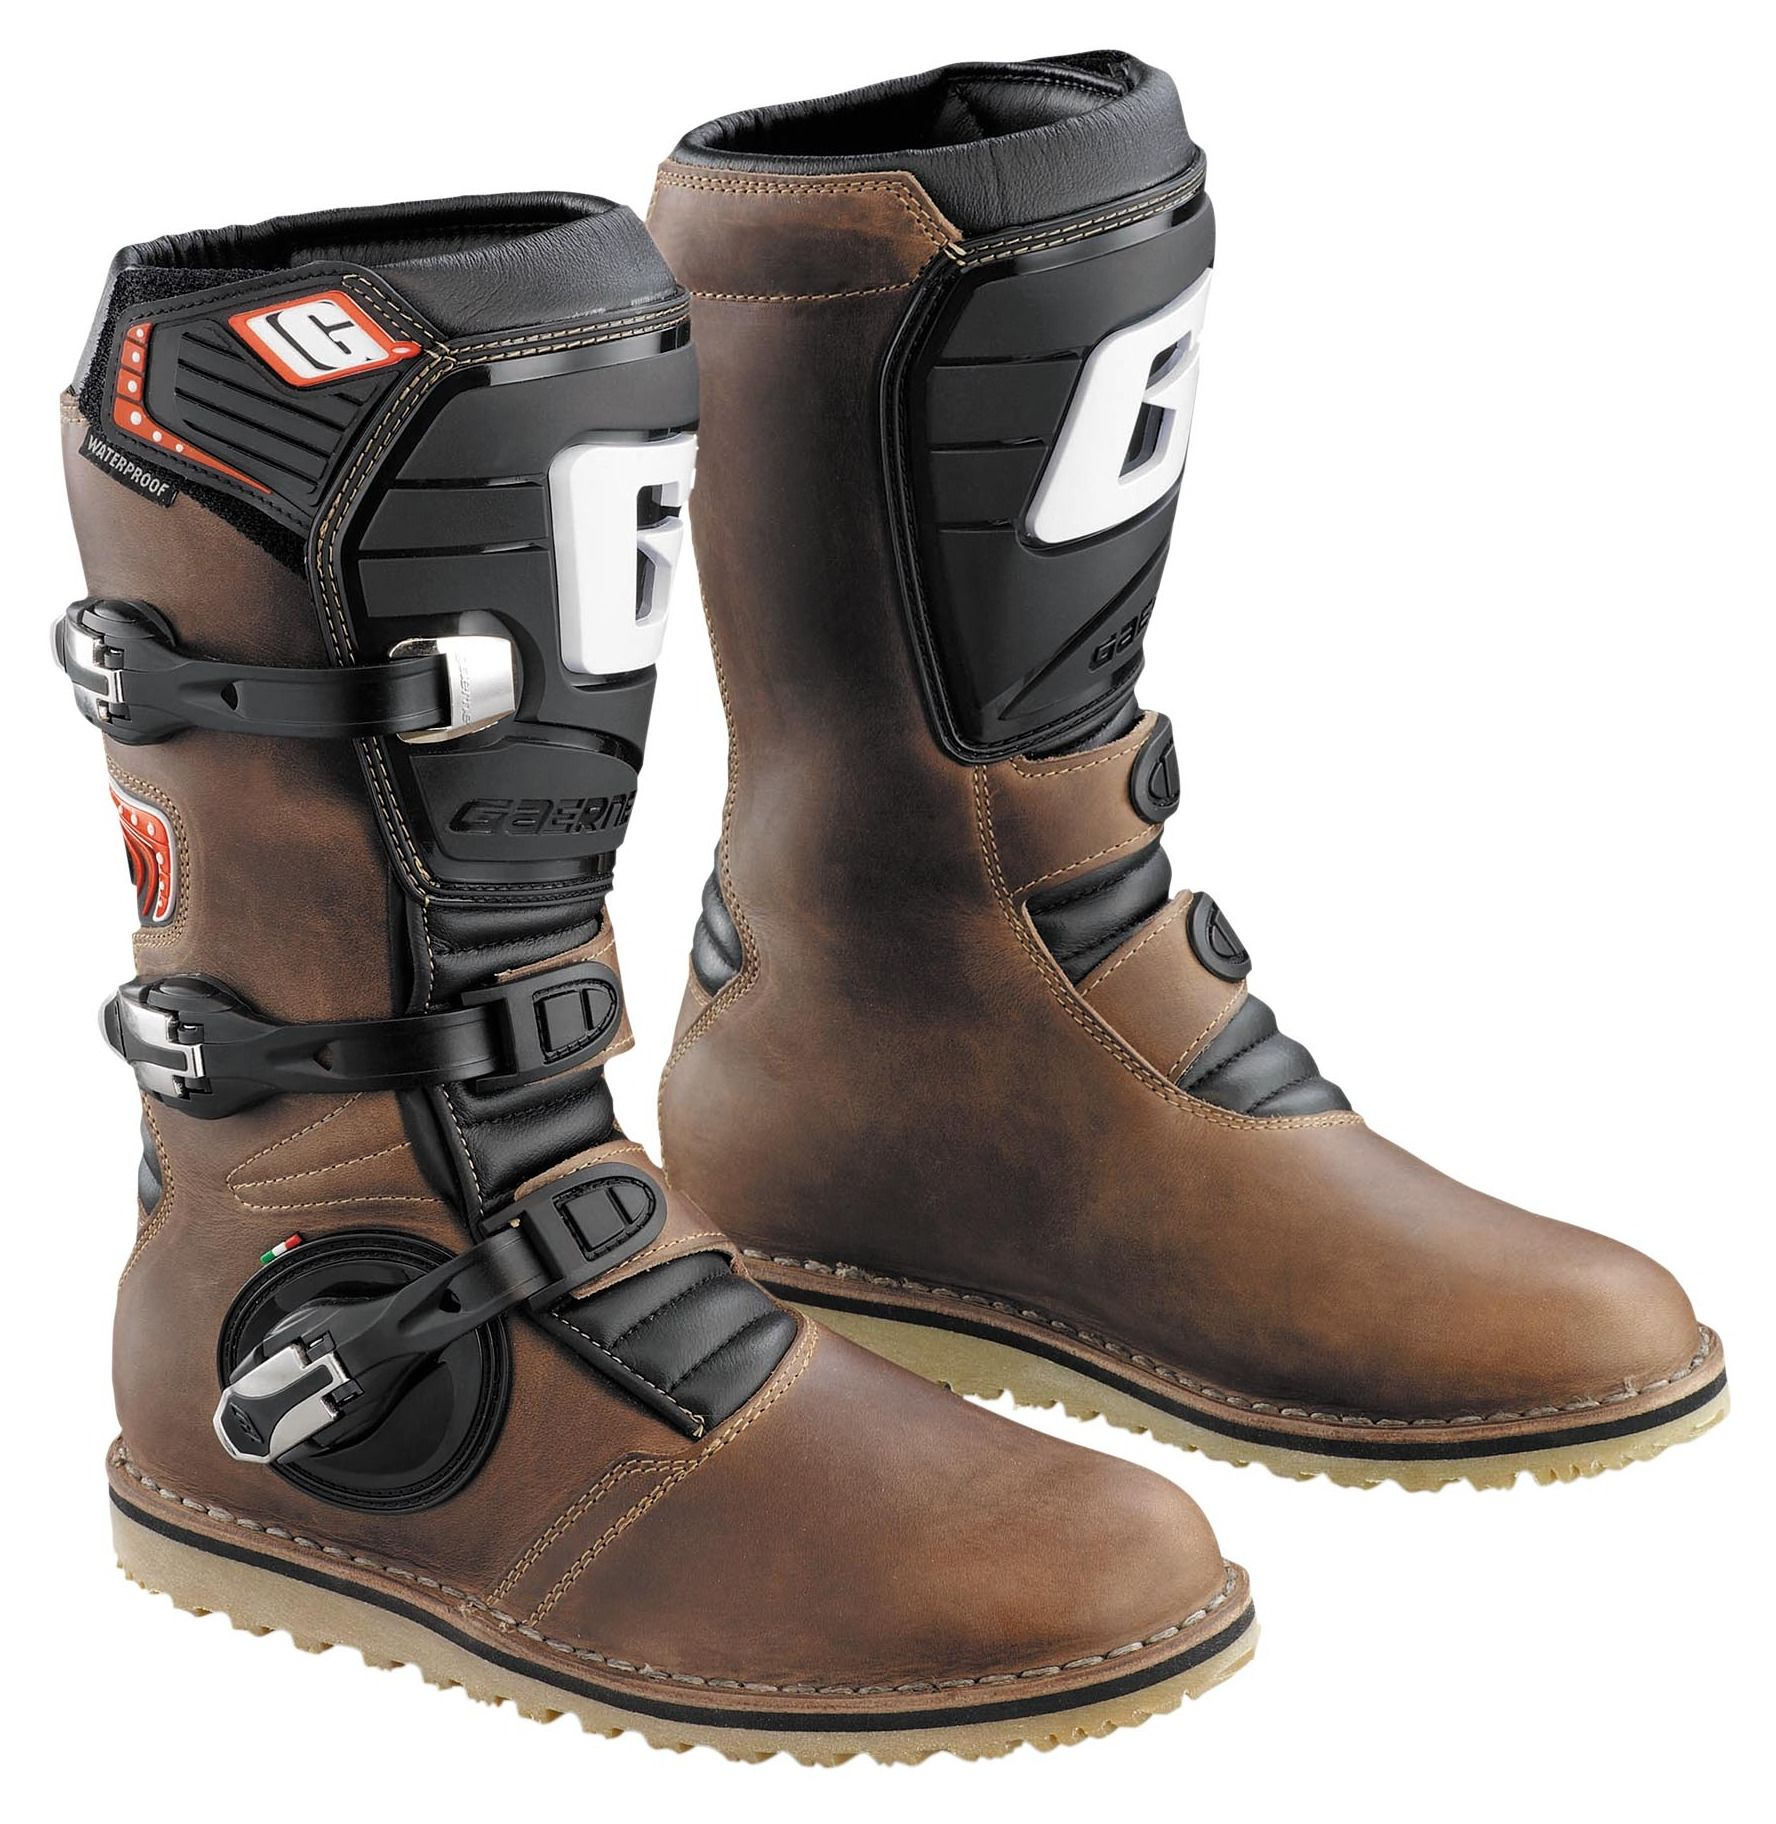 Gaerne Balance Oiled Boots Revzilla